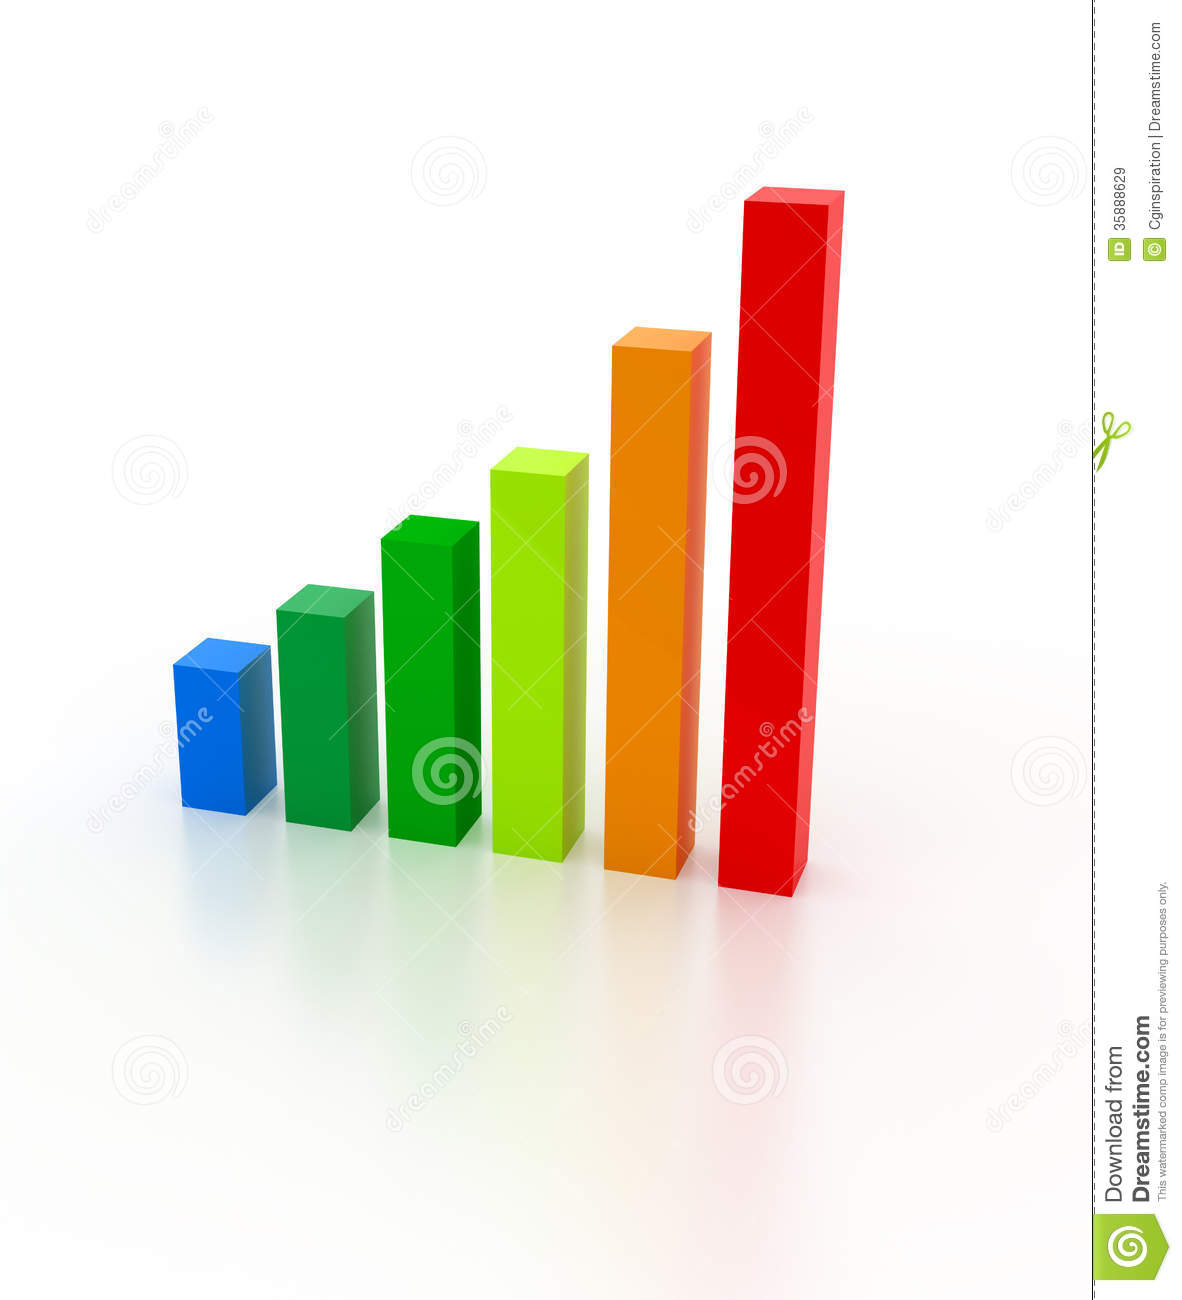 Graph clipart statistics probability. Cliparts free download best